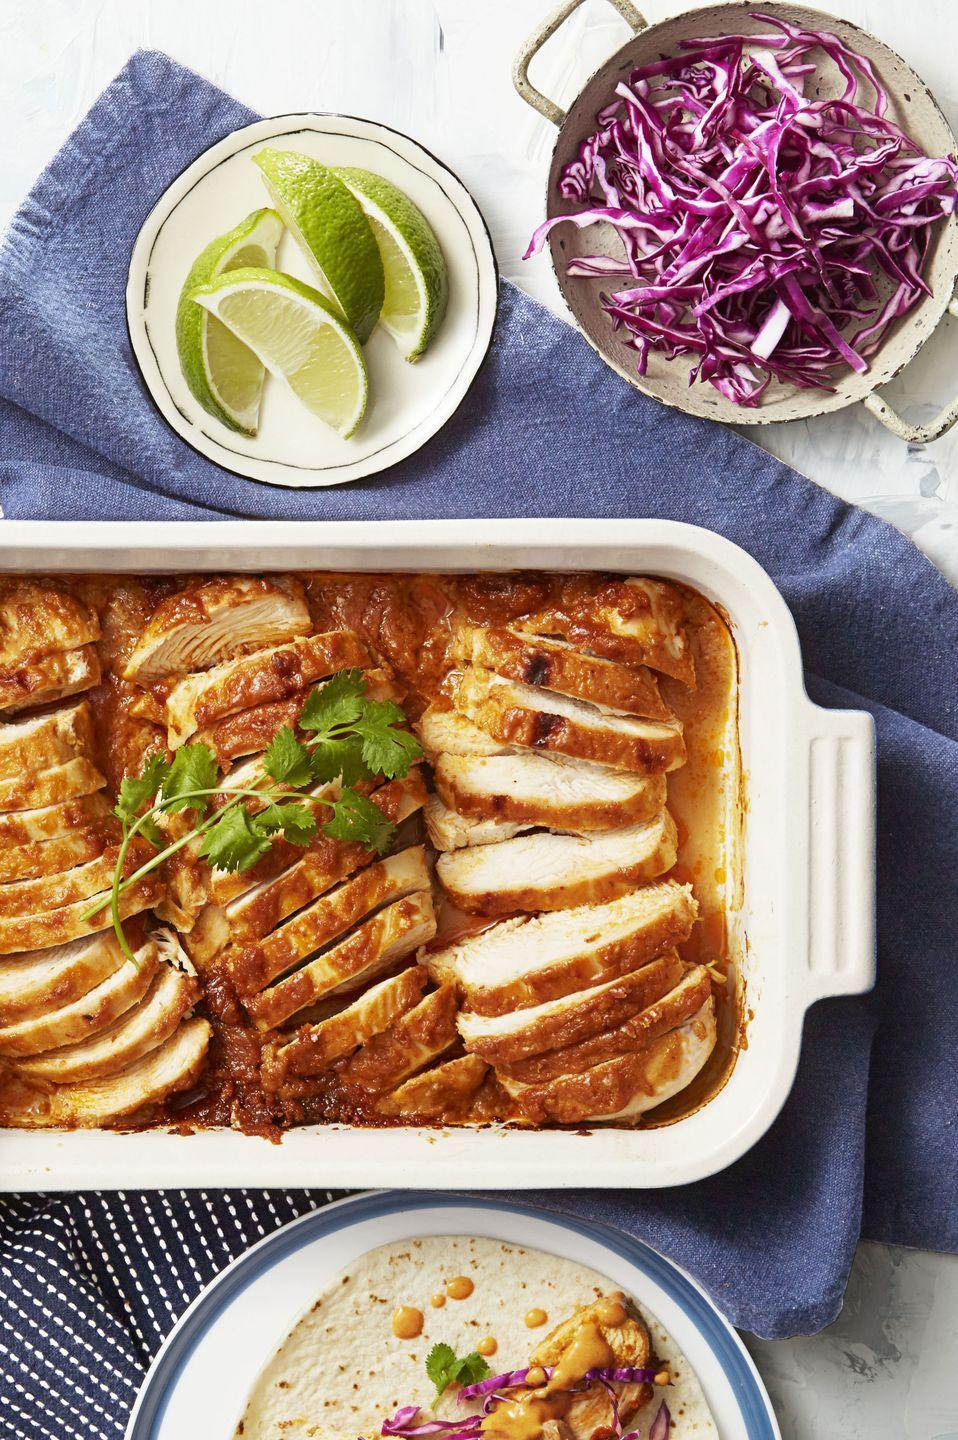 """<p>These chicken tacos prove that peanut sauce makes just about <em>everything</em> taste better.</p><p><em><a href=""""https://www.goodhousekeeping.com/food-recipes/easy/a35261/smoky-peanut-chicken-tacos/"""" rel=""""nofollow noopener"""" target=""""_blank"""" data-ylk=""""slk:Get the recipe for Smoky Peanut Chicken Tacos »"""" class=""""link rapid-noclick-resp"""">Get the recipe for Smoky Peanut Chicken Tacos » </a></em></p>"""